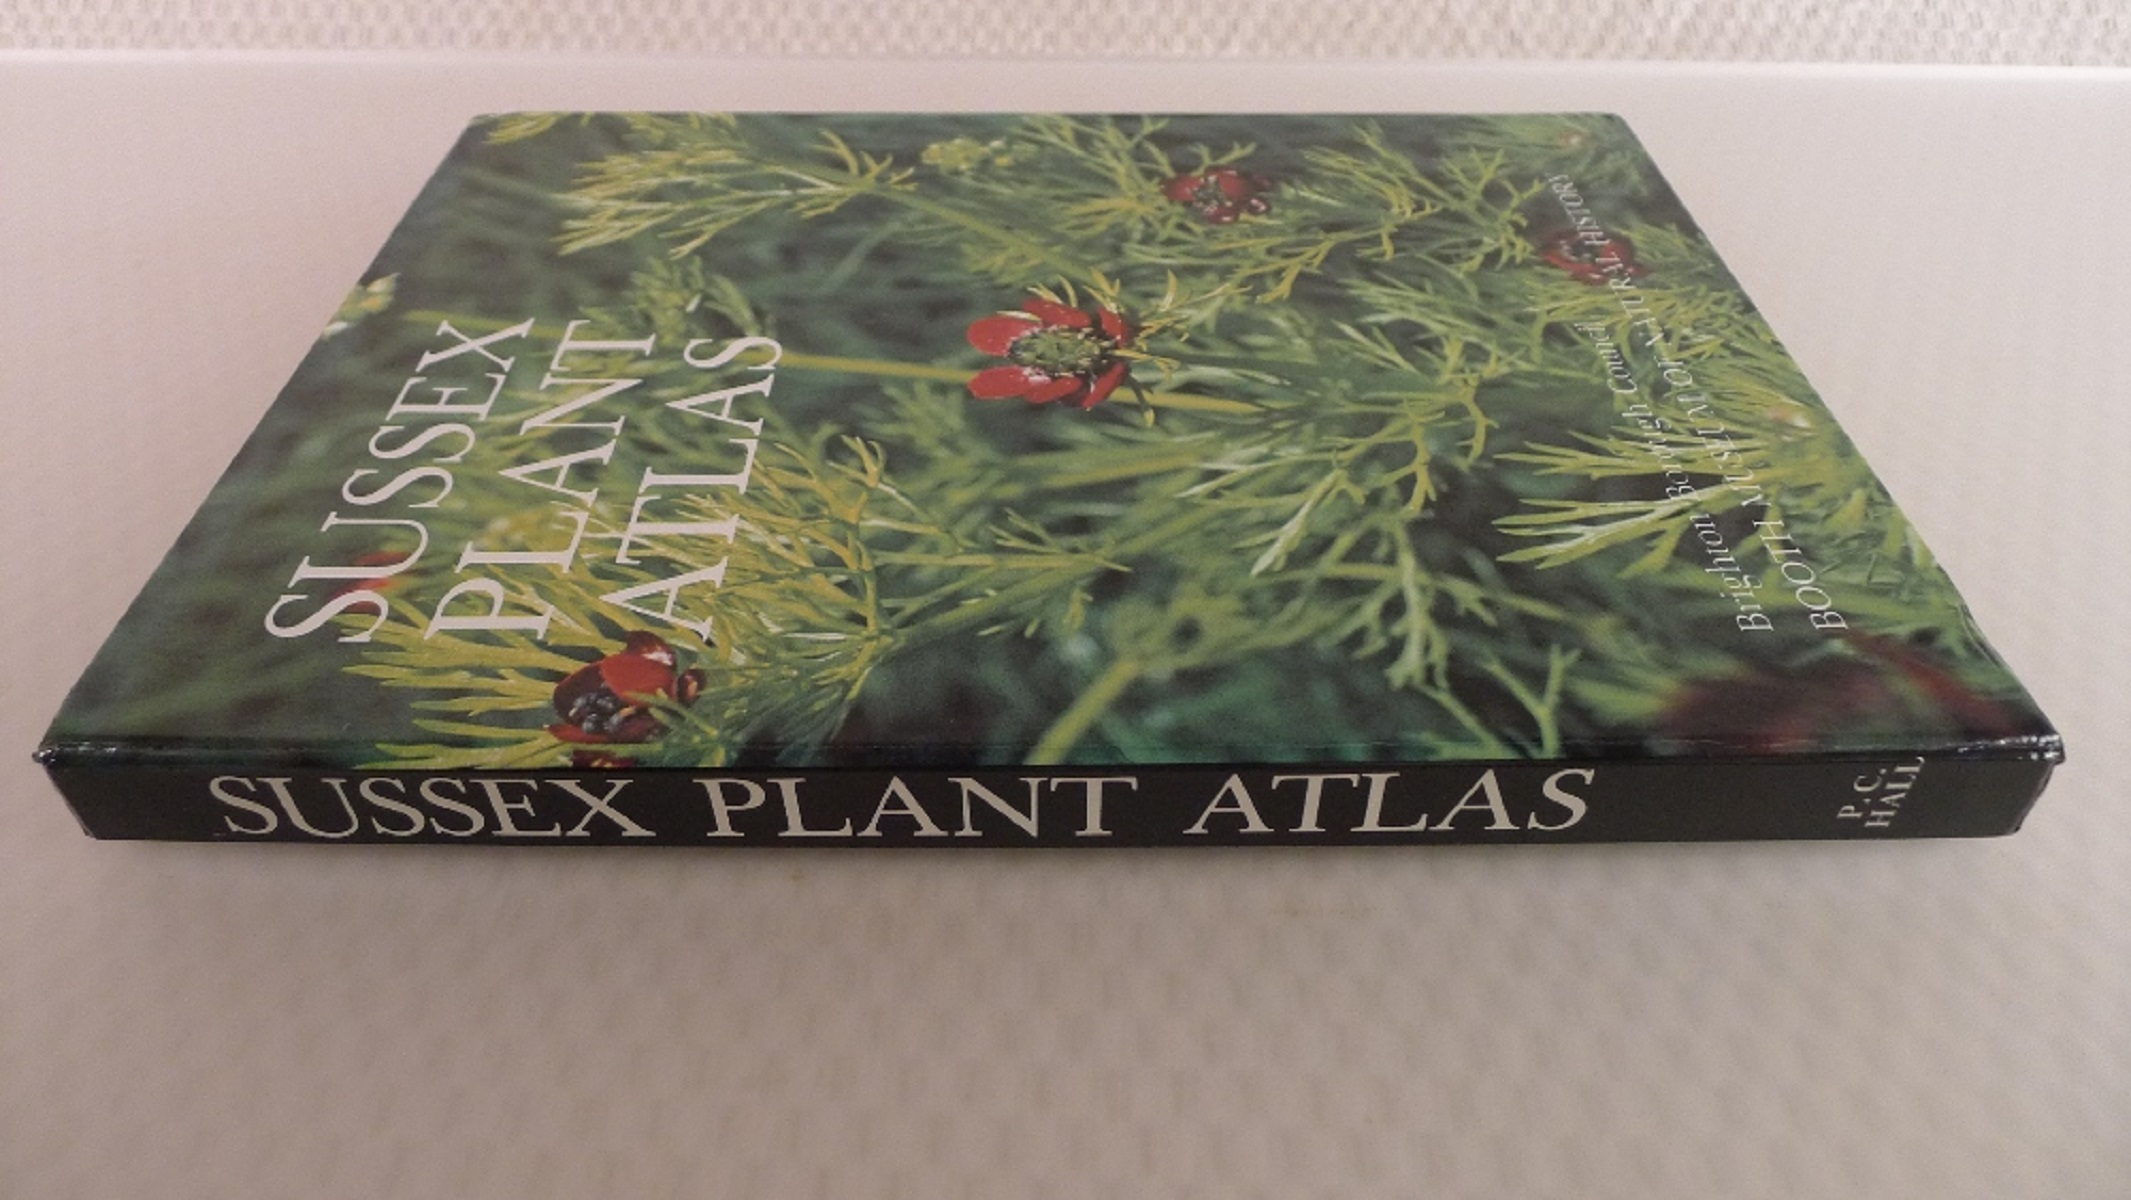 Sussex Plant Atlas by P C Hall published by Brighton Borough Council and Booth Museum of Natural - Image 2 of 4